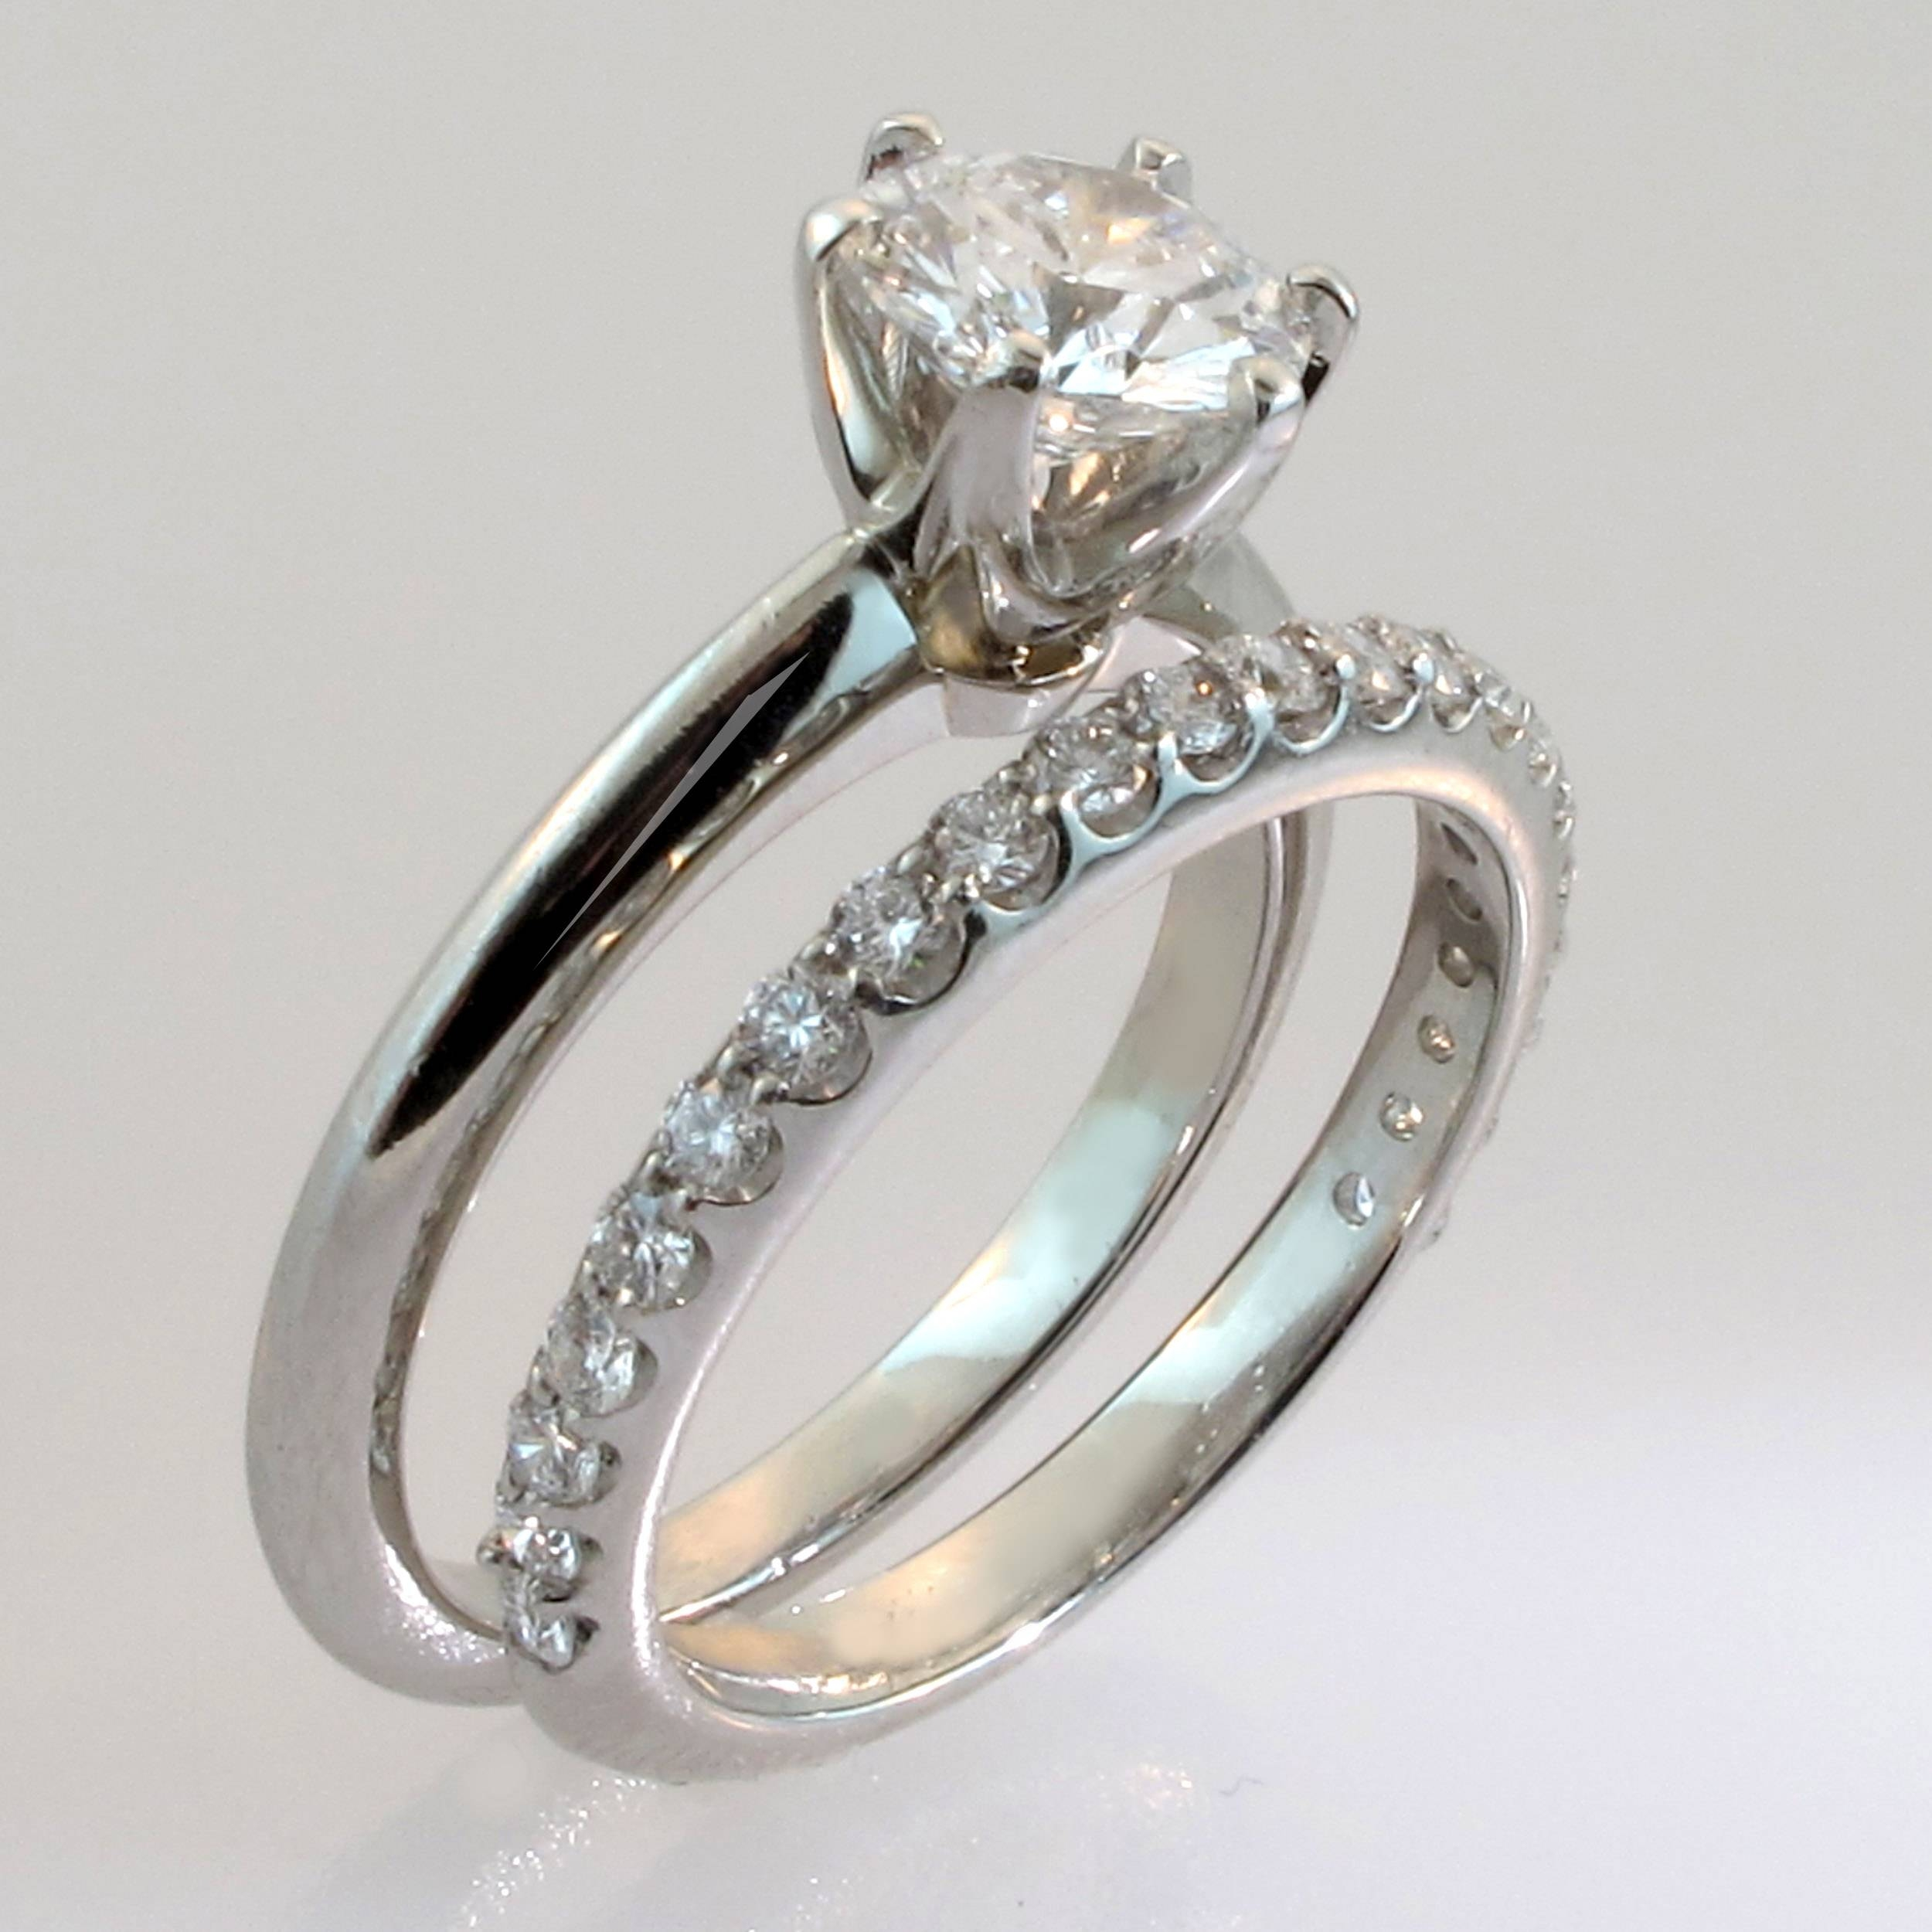 15 Collection of Unique Wedding Rings Sets